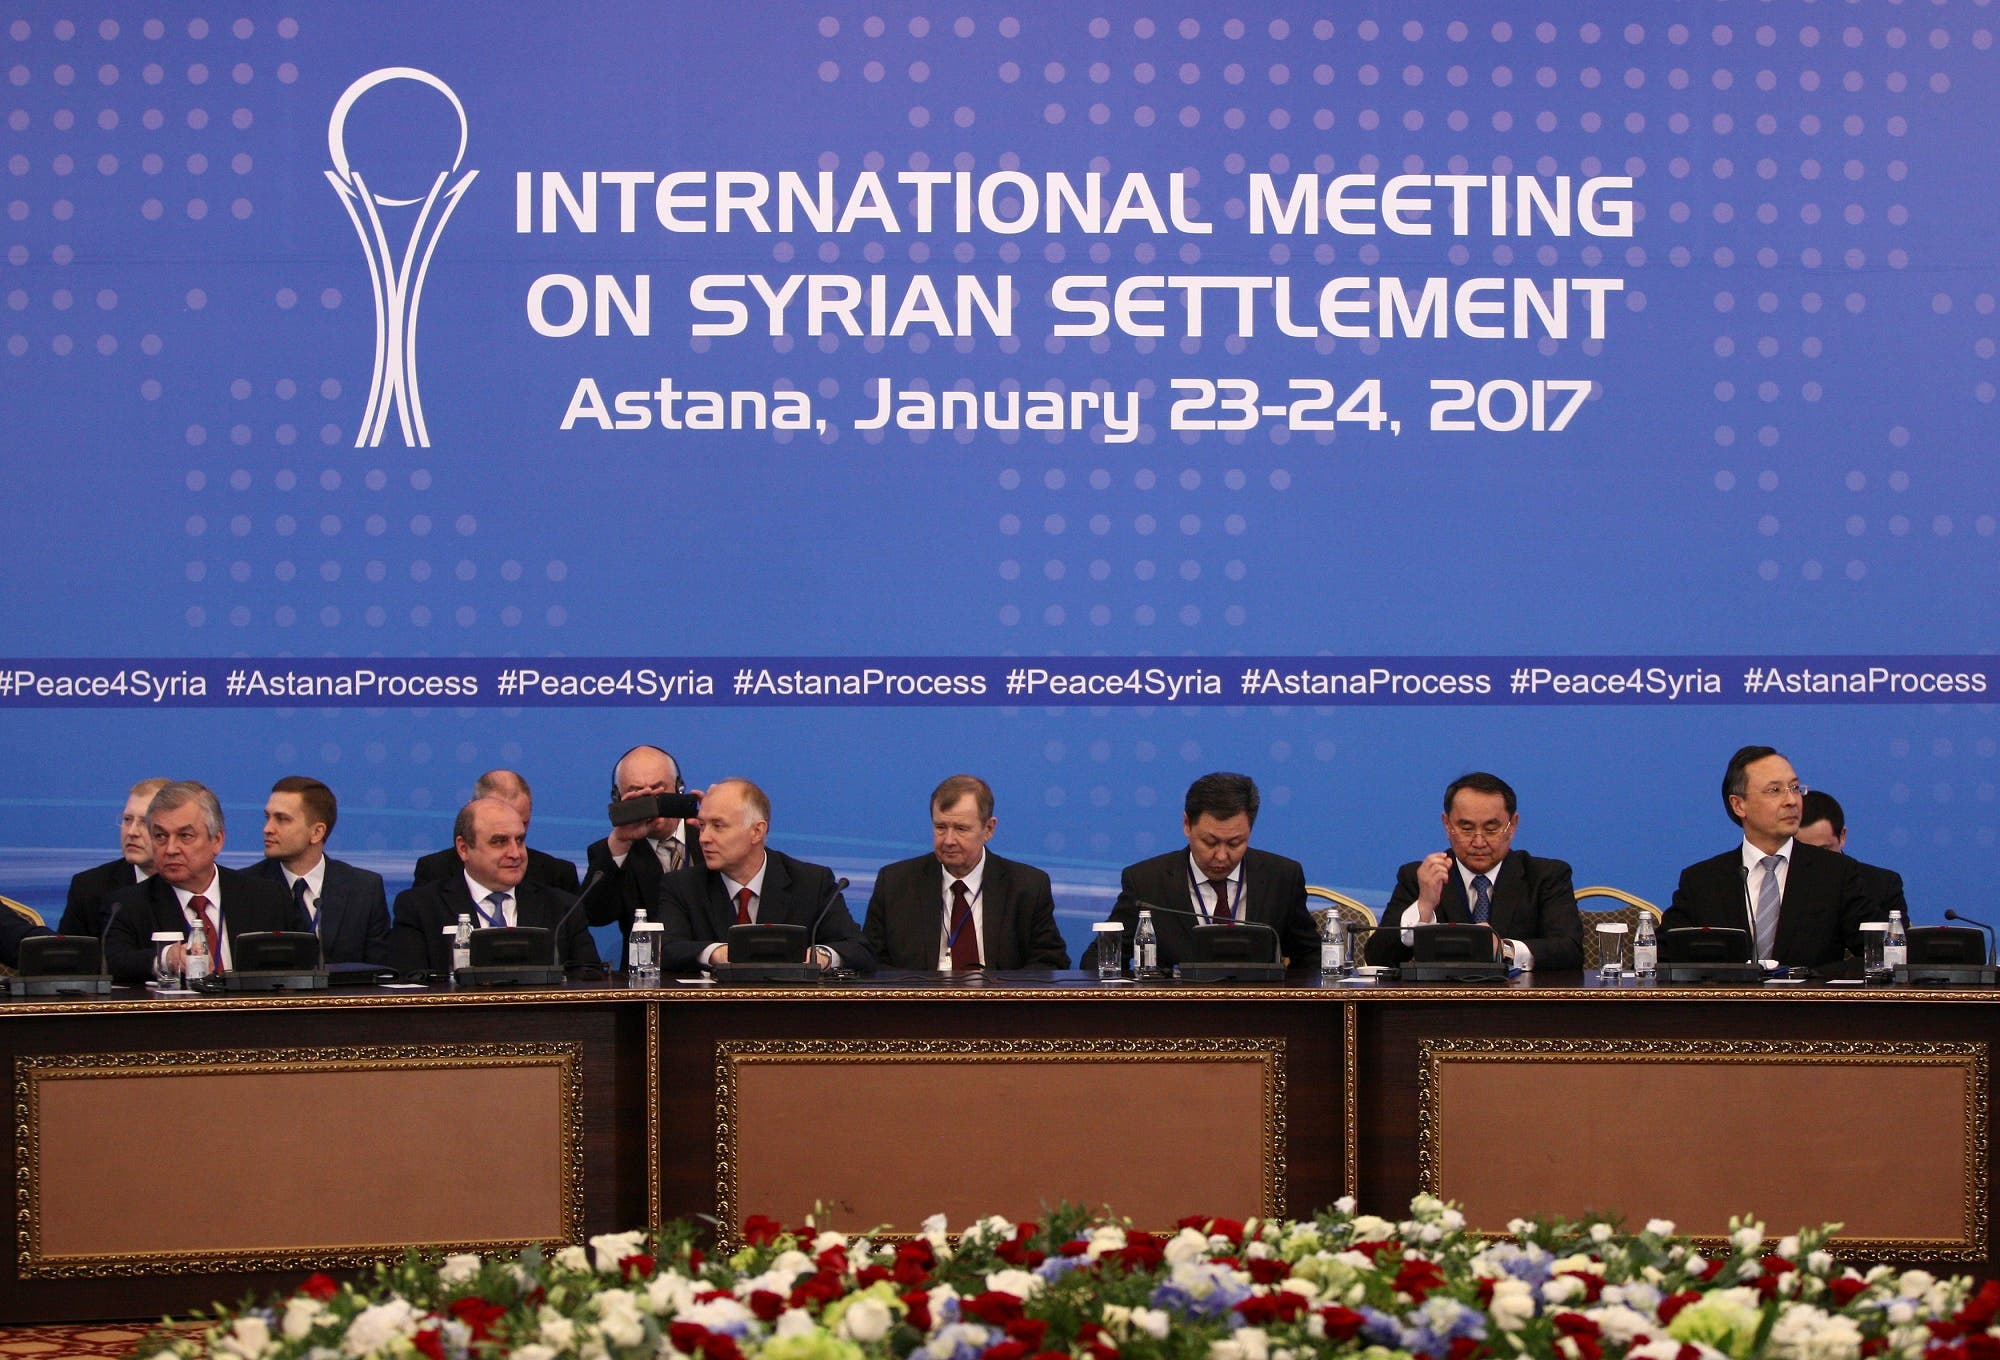 Participants of Syria peace talks attend a meeting in Astana, Kazakhstan January 23, 2017. REUTERS